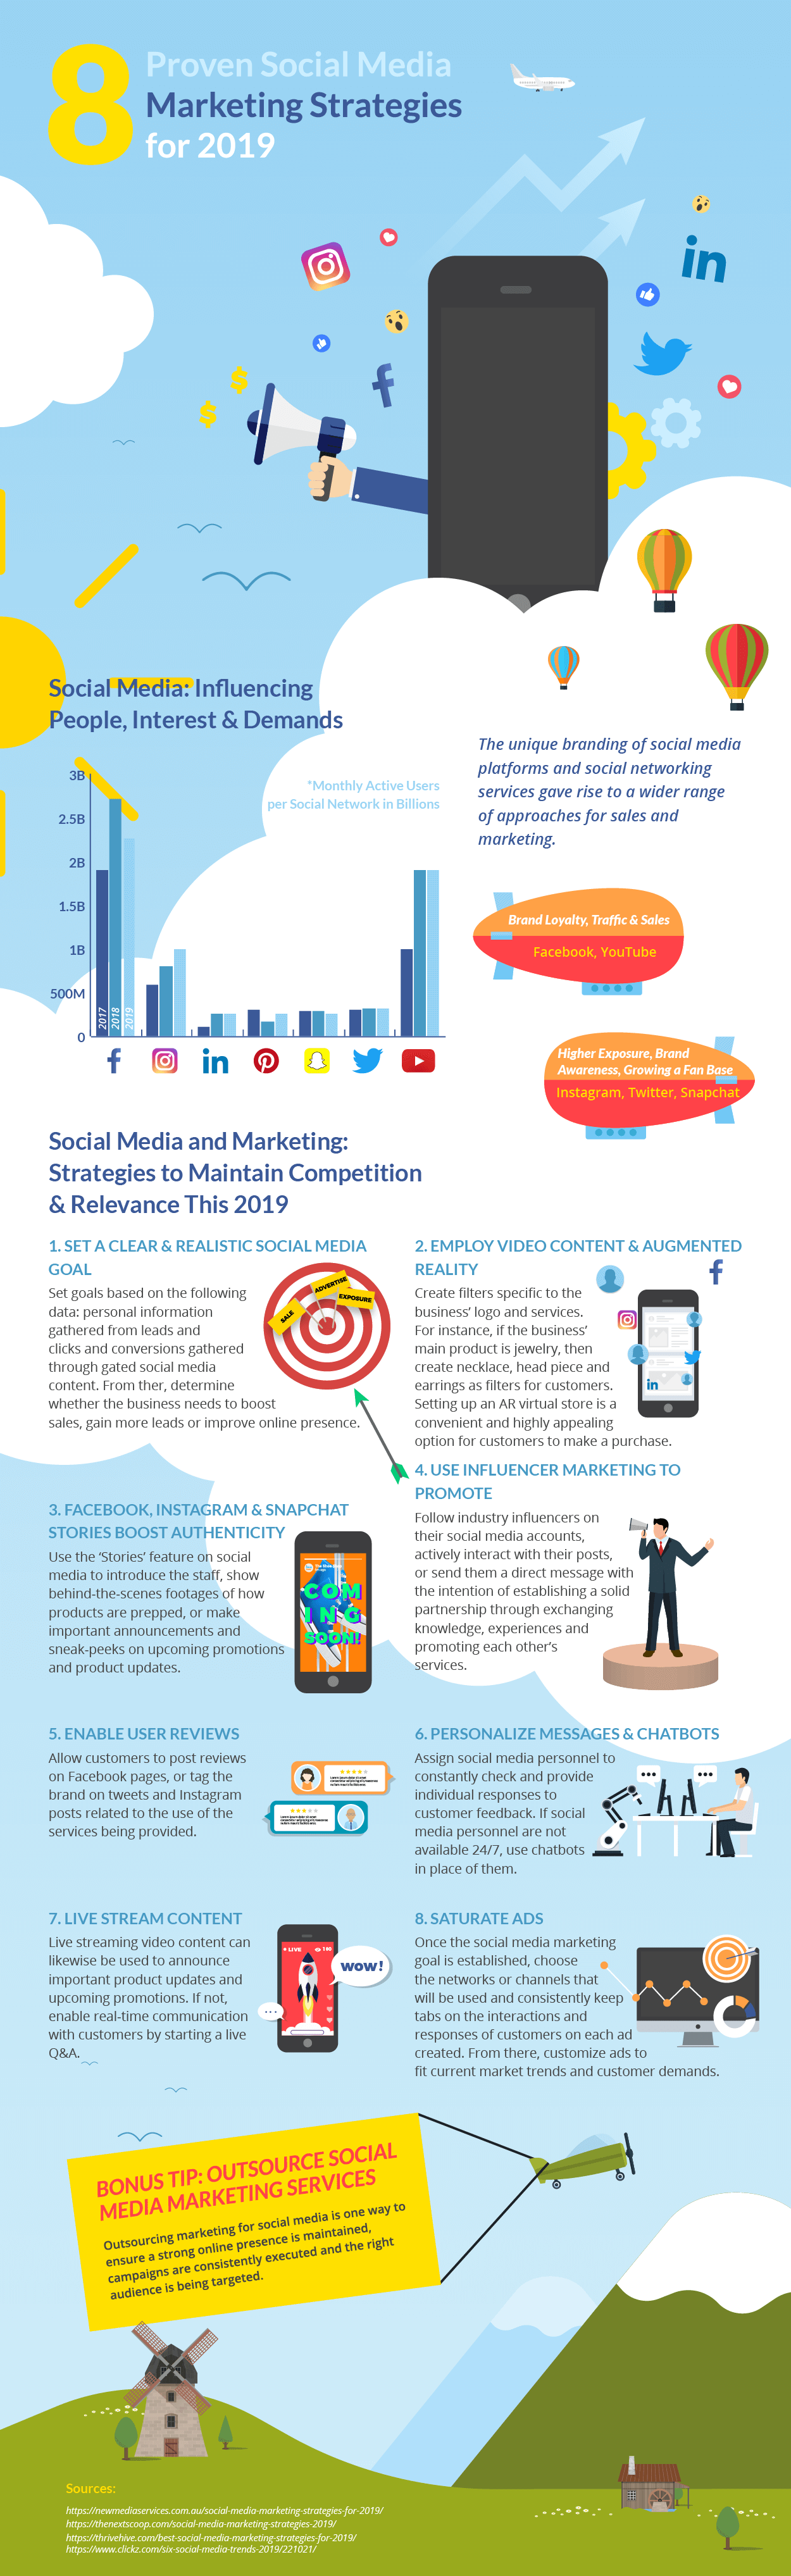 Social Media Marketing Strategies for 2019